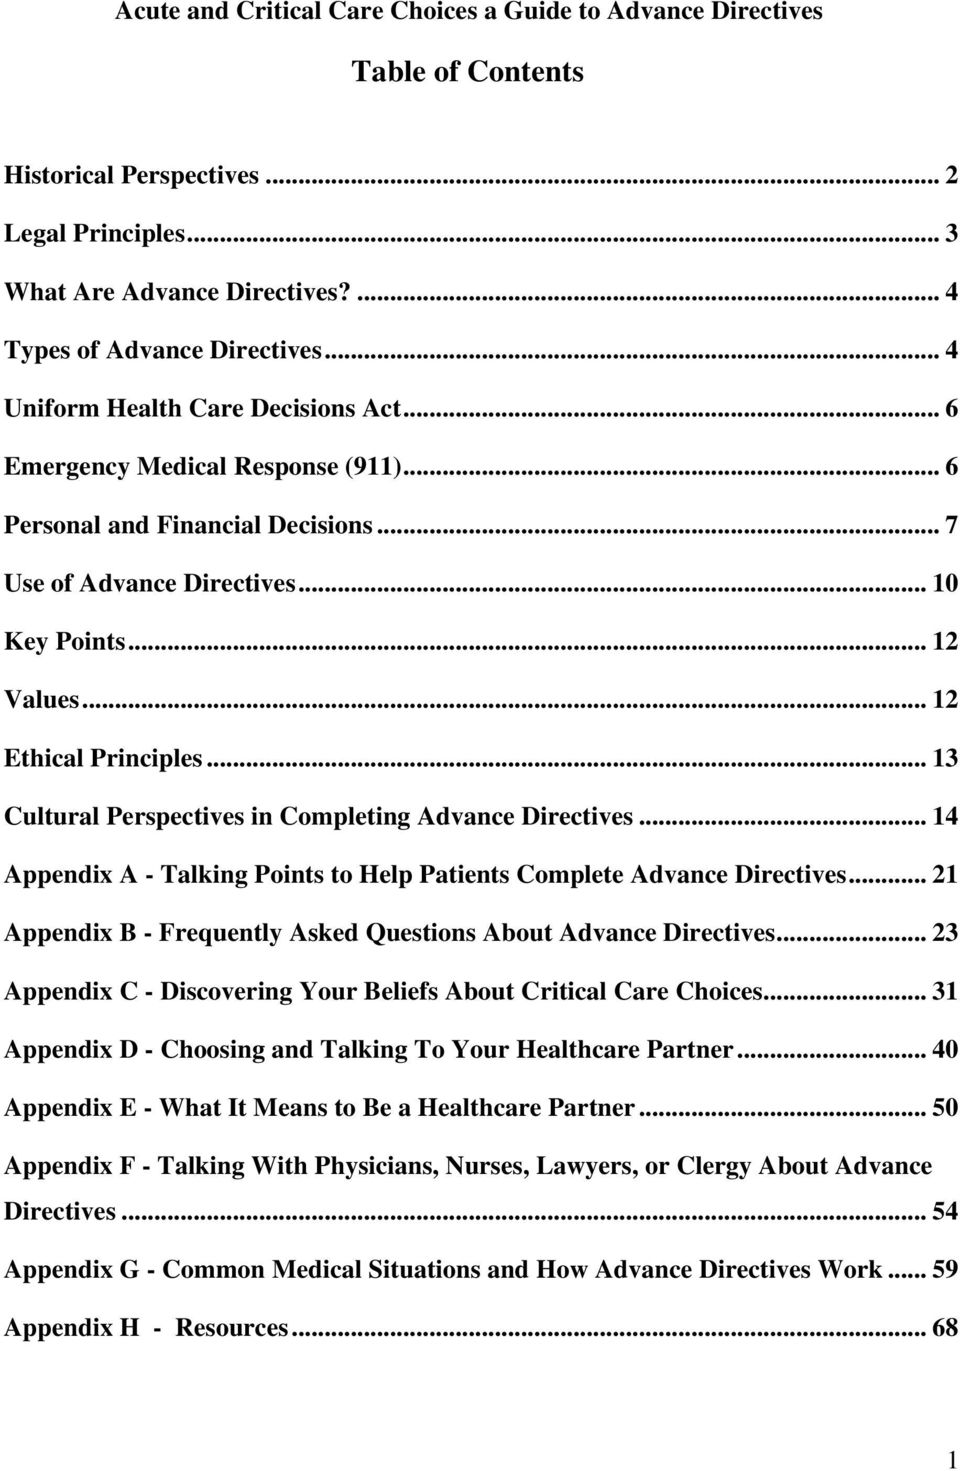 .. 13 Cultural Perspectives in Completing Advance Directives... 14 Appendix A - Talking Points to Help Patients Complete Advance Directives.